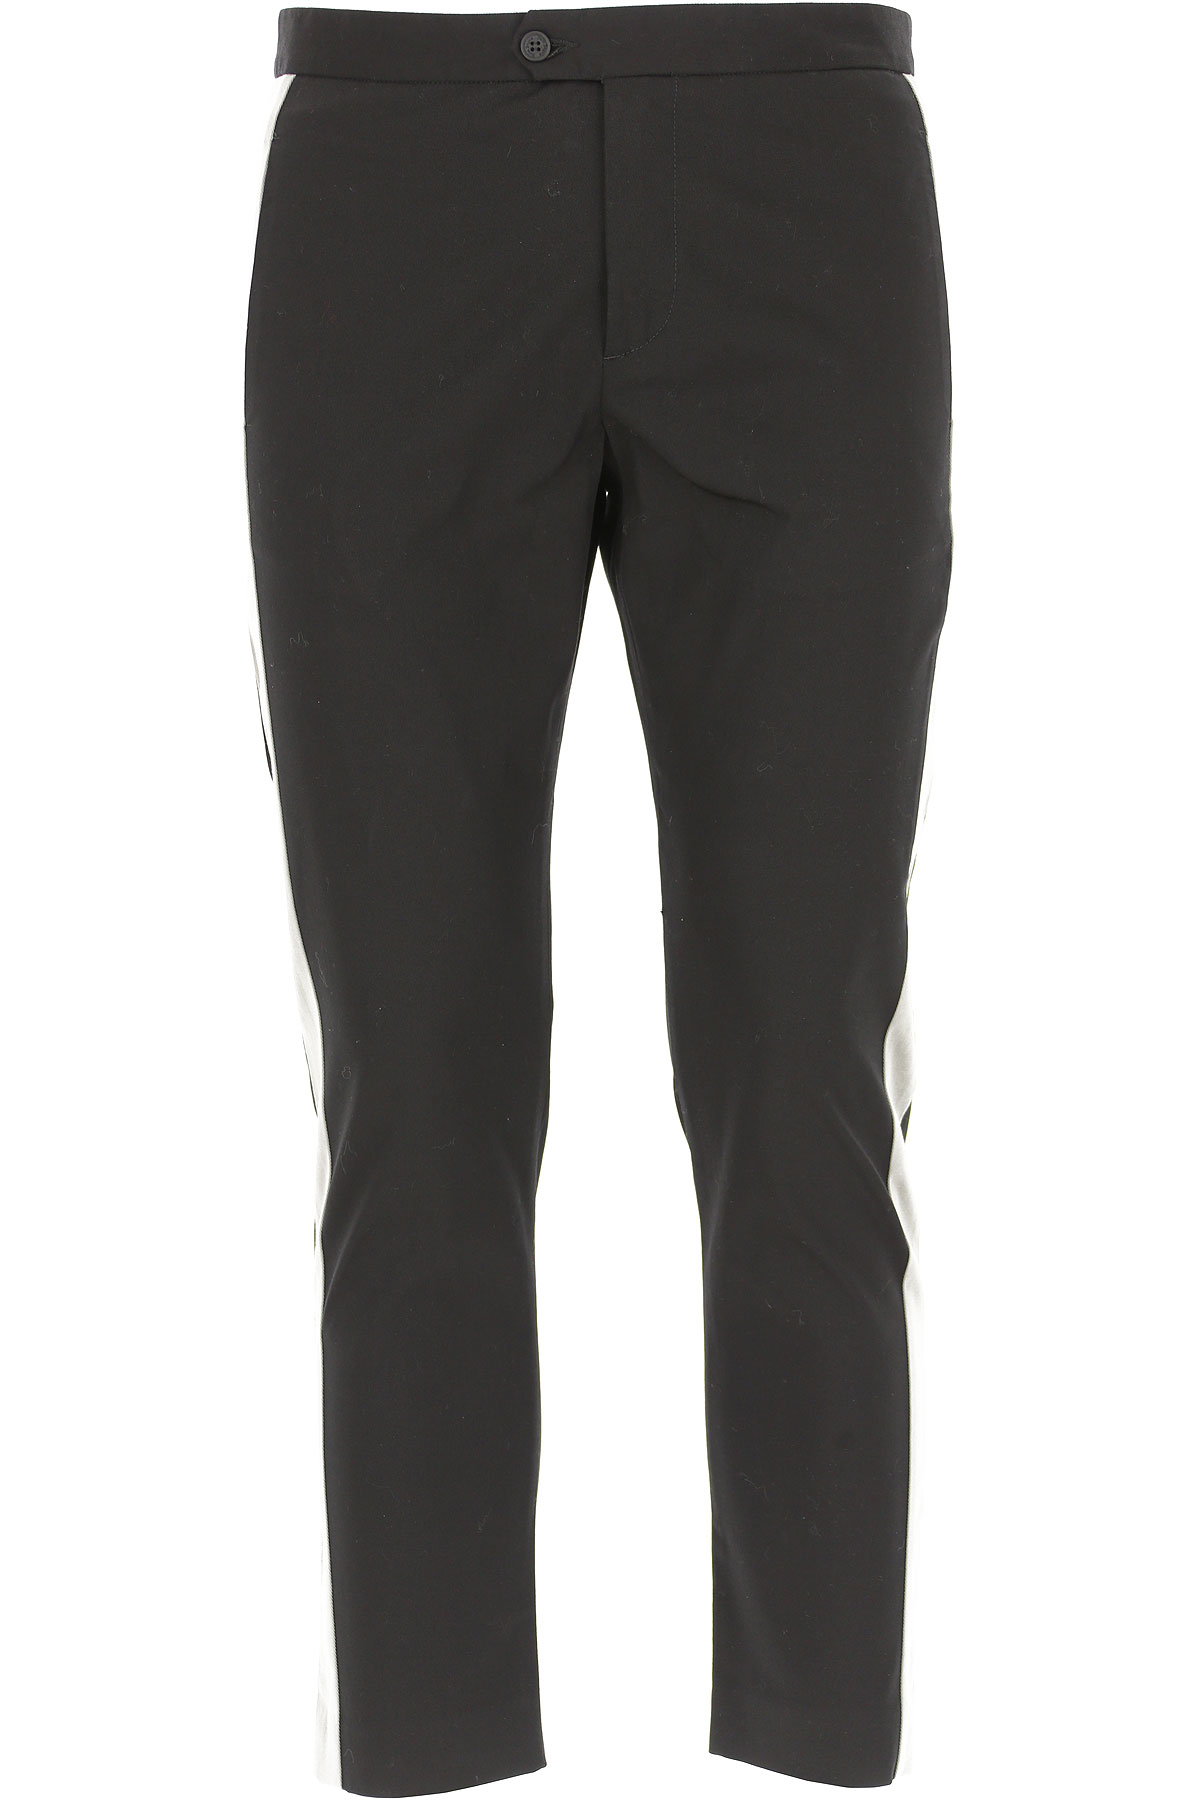 Image of Palm Angels Pants for Men On Sale in Outlet, Black, Cotton, 2017, 28 30